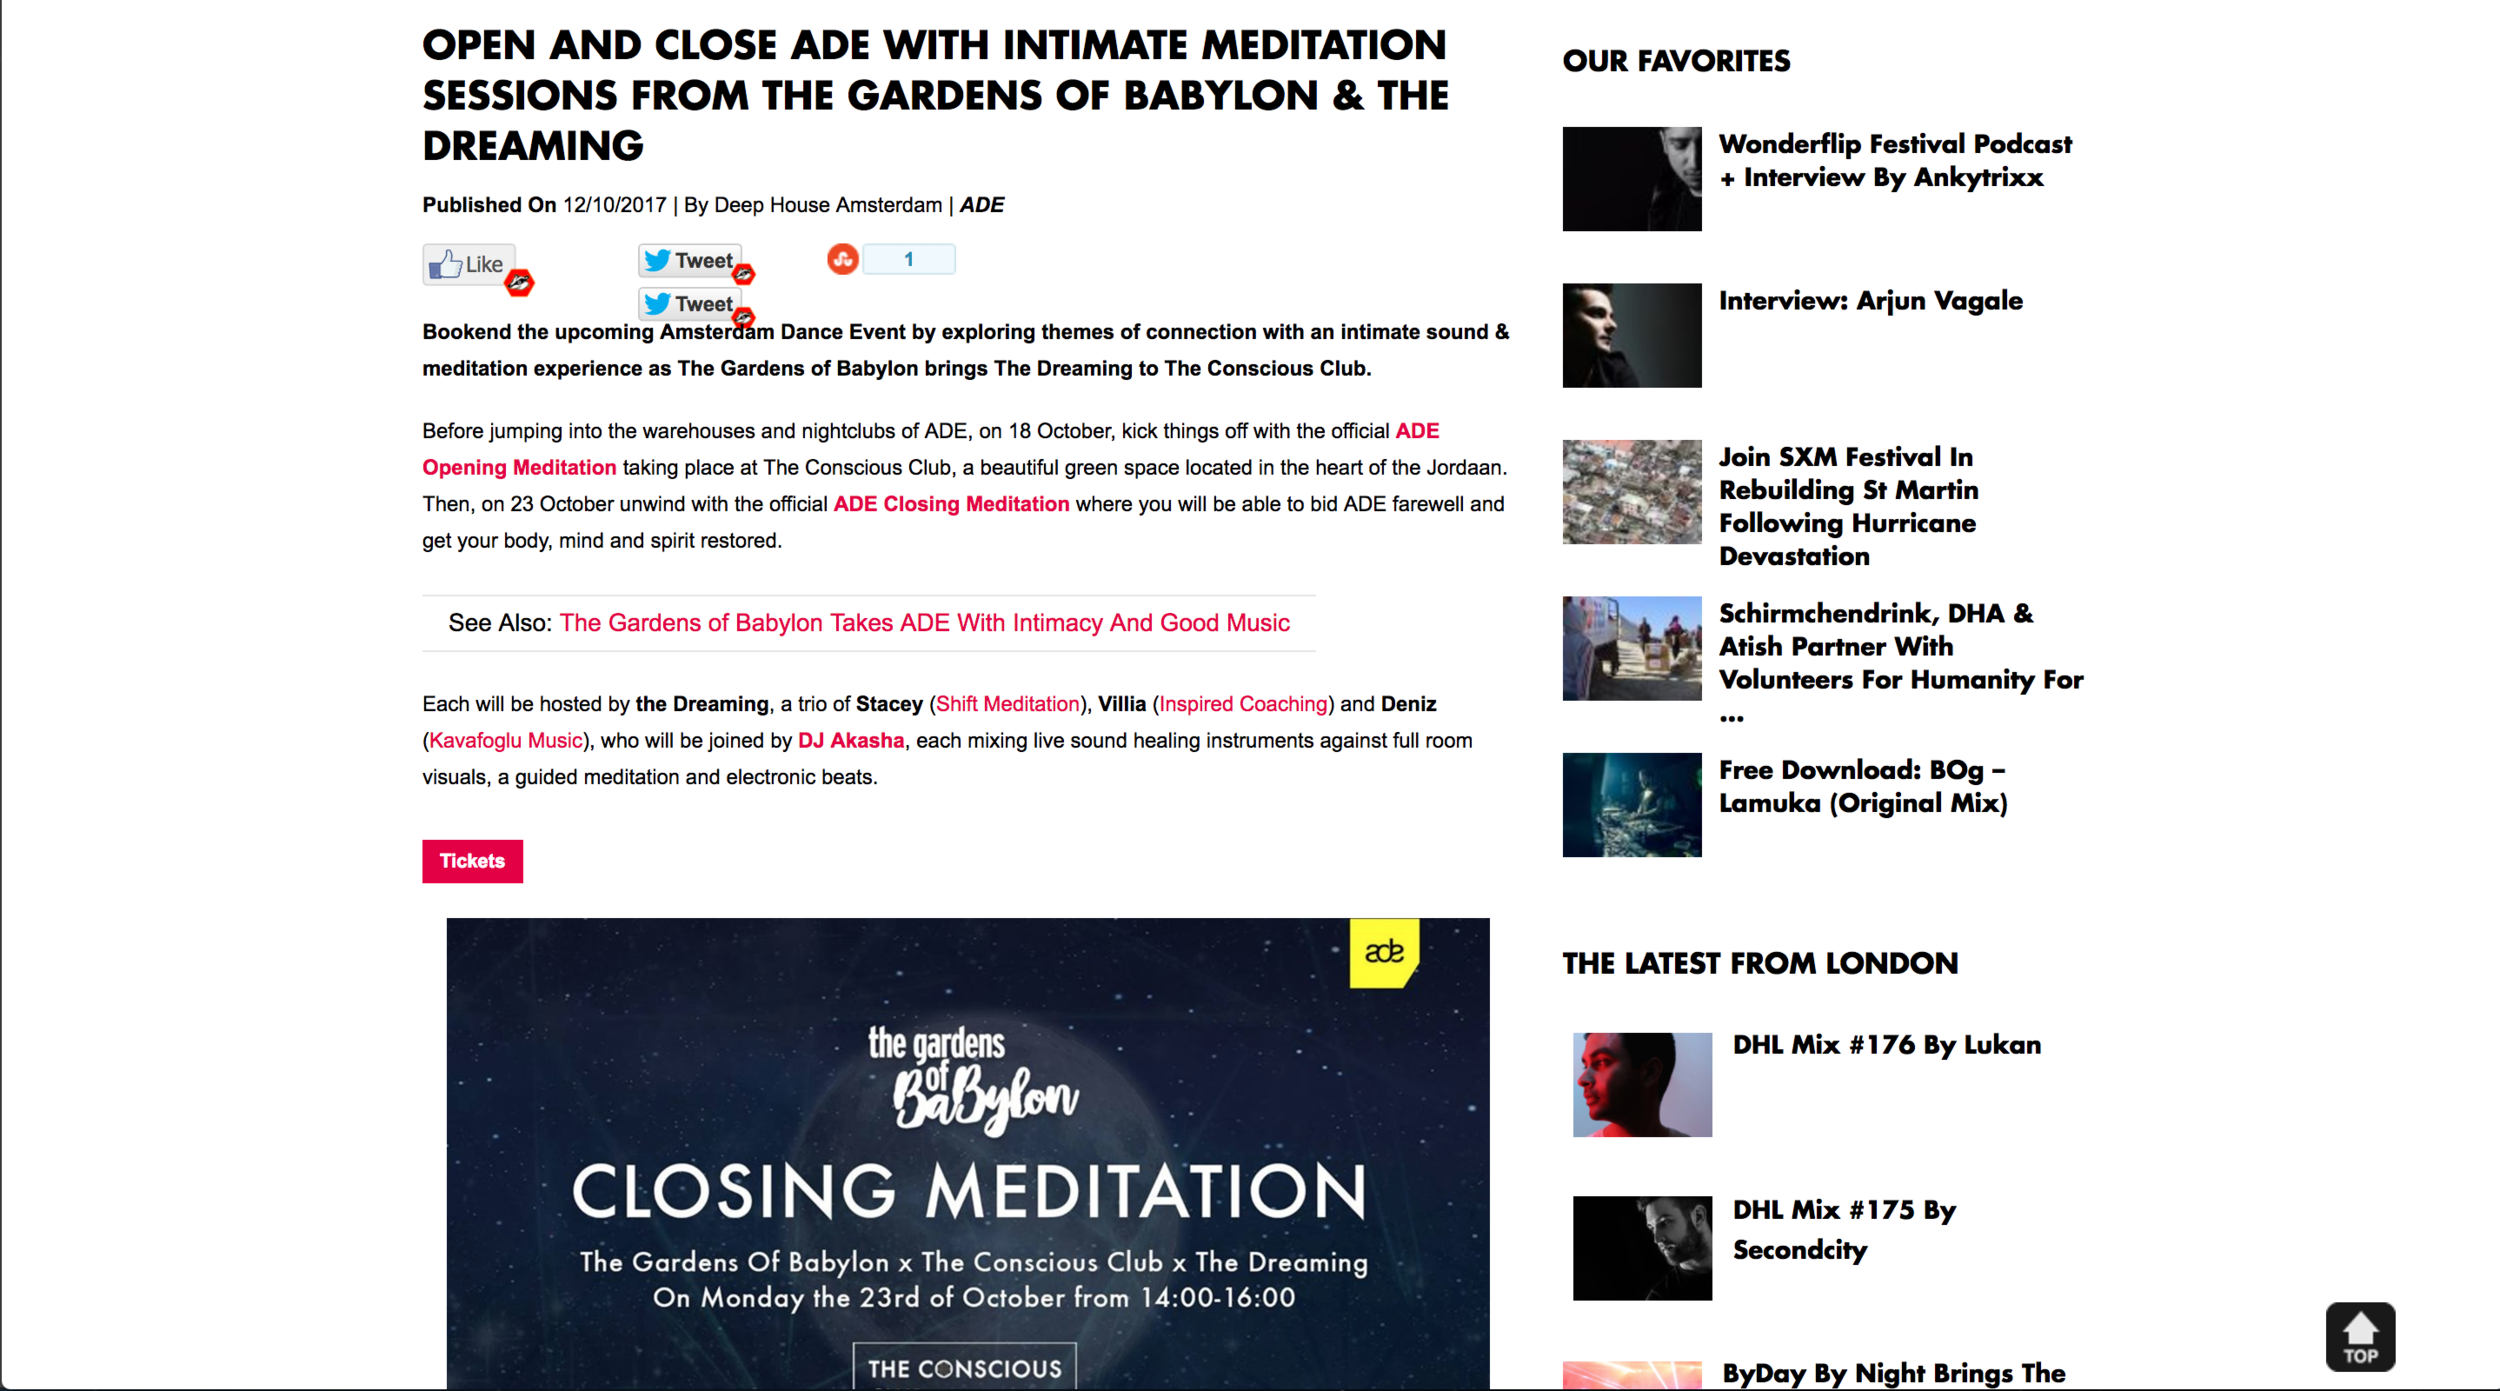 http://www.deephouseamsterdam.com/ade-2017-open-close-meditation-conscious-club/